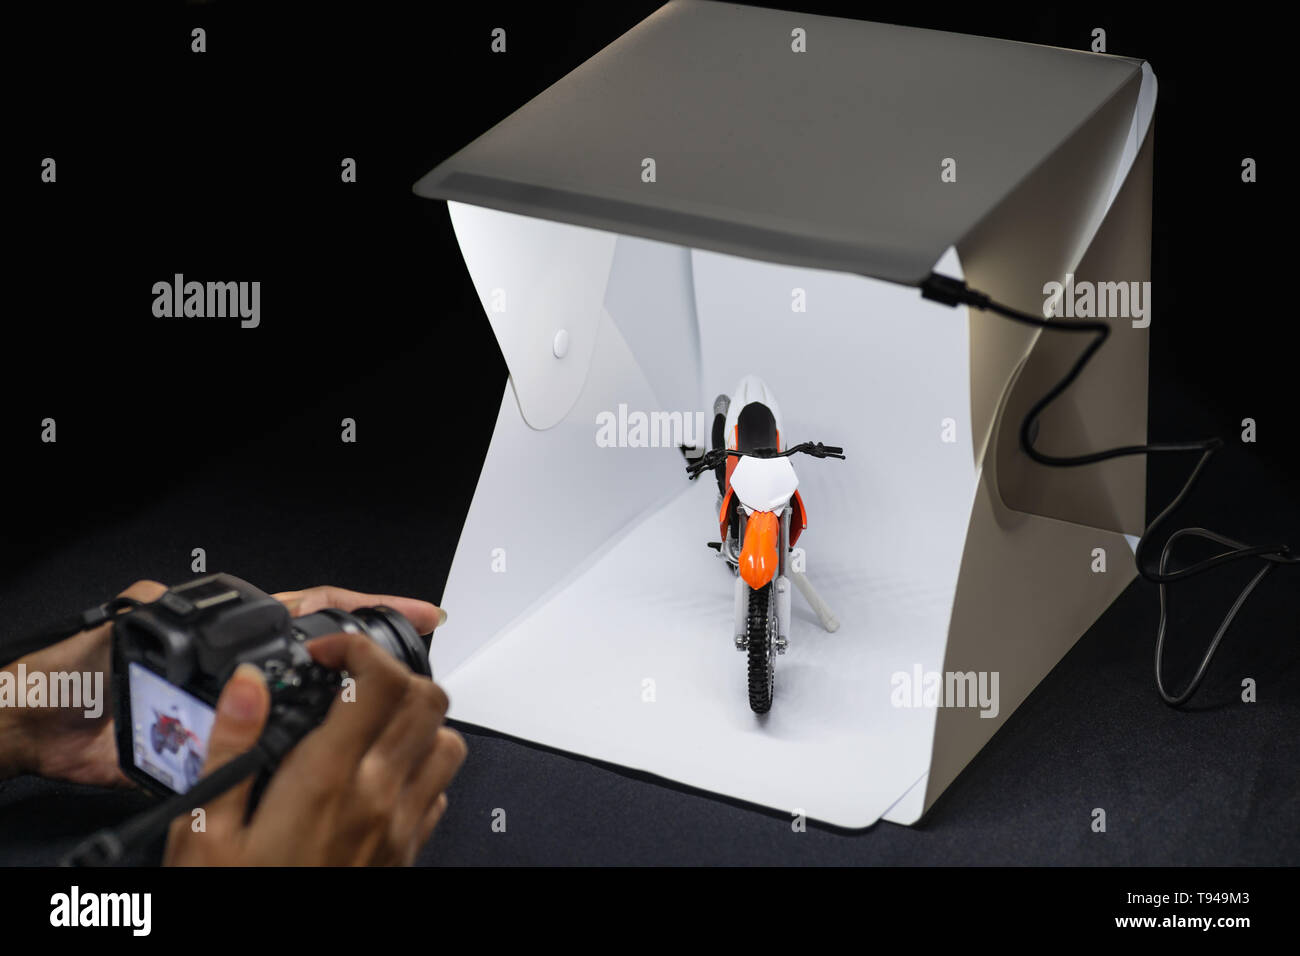 Amateur photographer working on mirrorless camera to shooting motrocycle model in mini lightbox - Stock Image